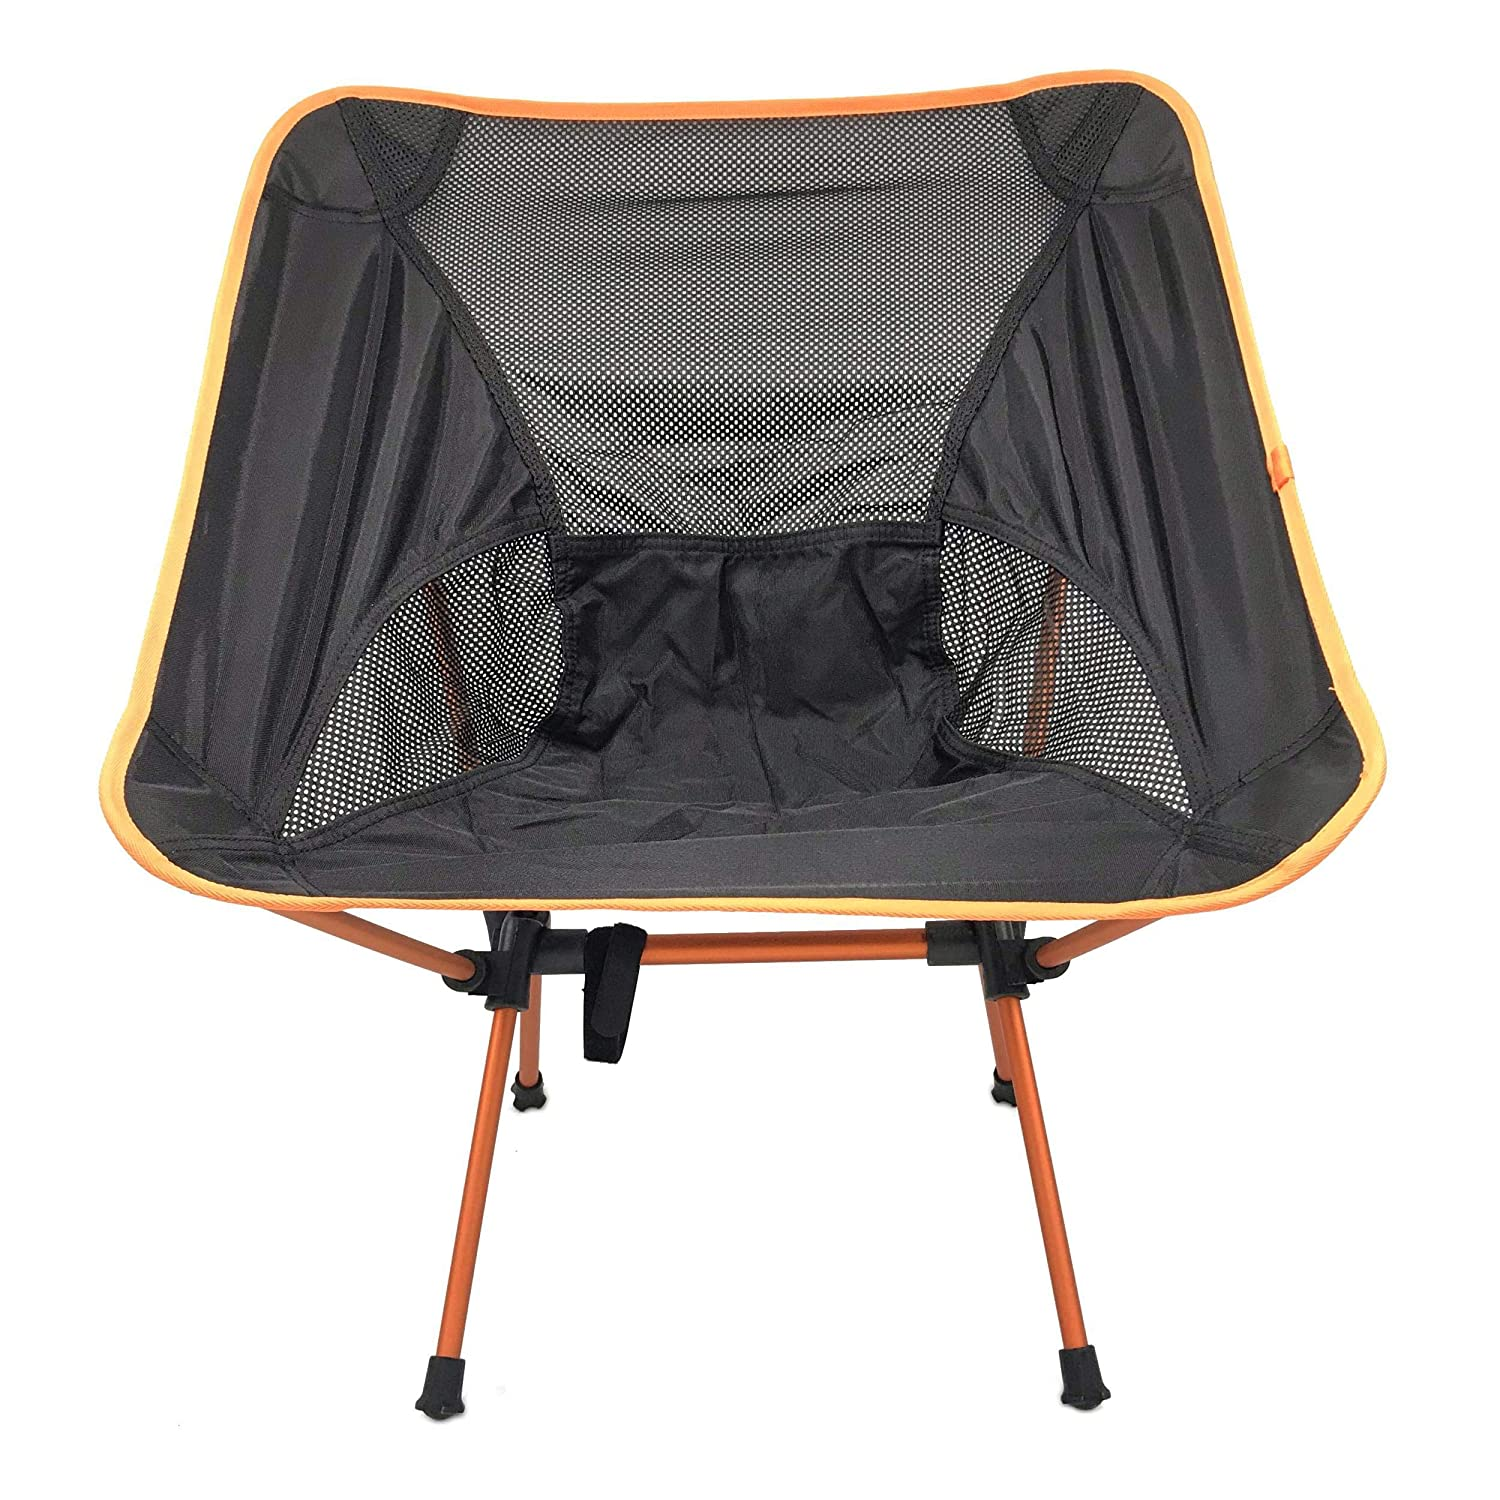 4 Colors A Yue Camping Moon Leisure Chair,Foldable Breathable Ultralight Beach Picnic Fishing